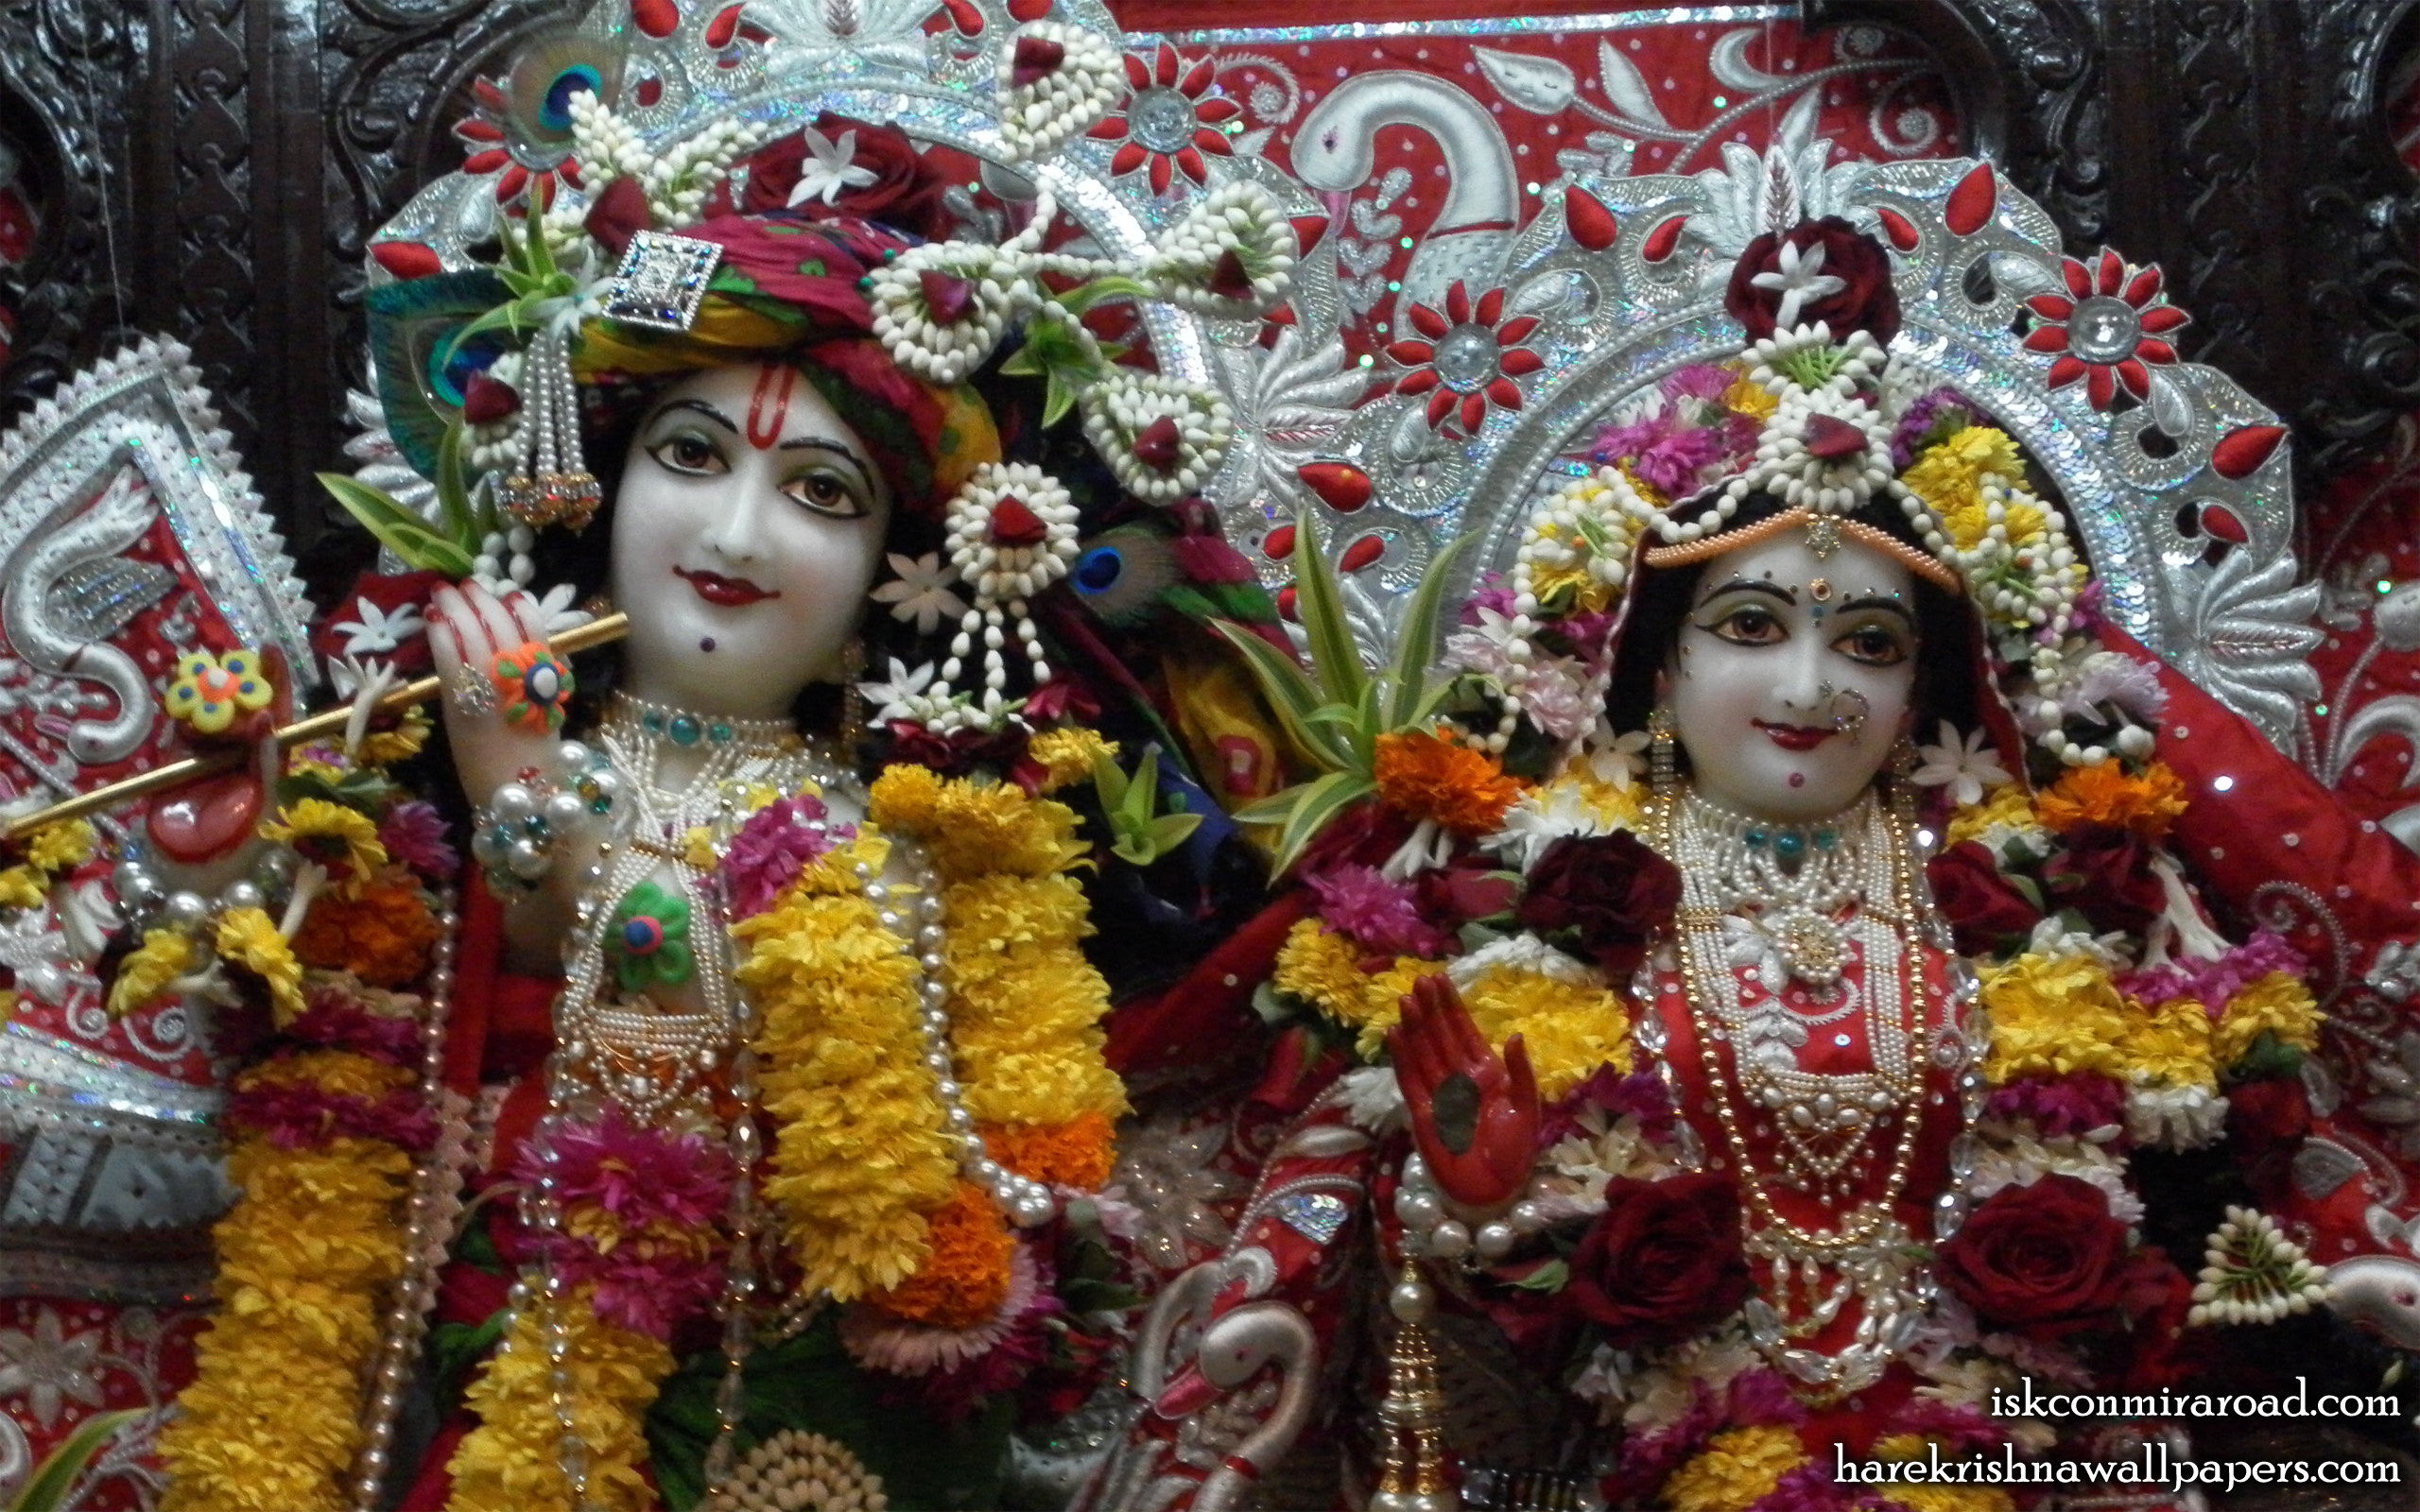 Sri Sri Radha Giridhari Close up Wallpaper (021) Size 2560x1600 Download